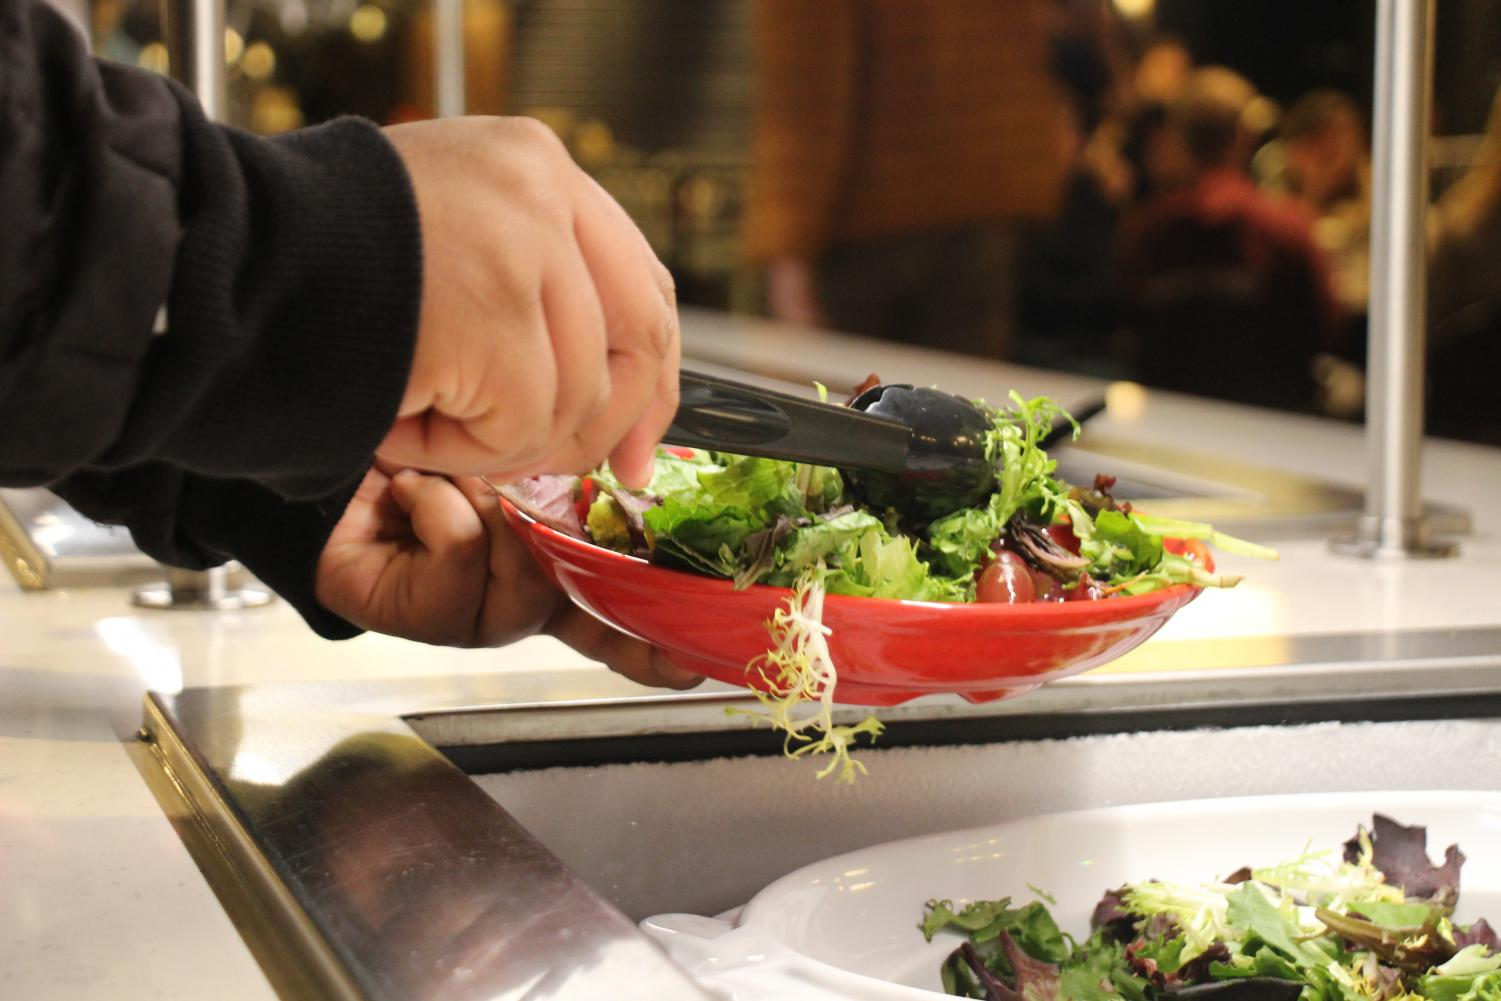 Both Commons and Knollcrest dining halls offer vegan options